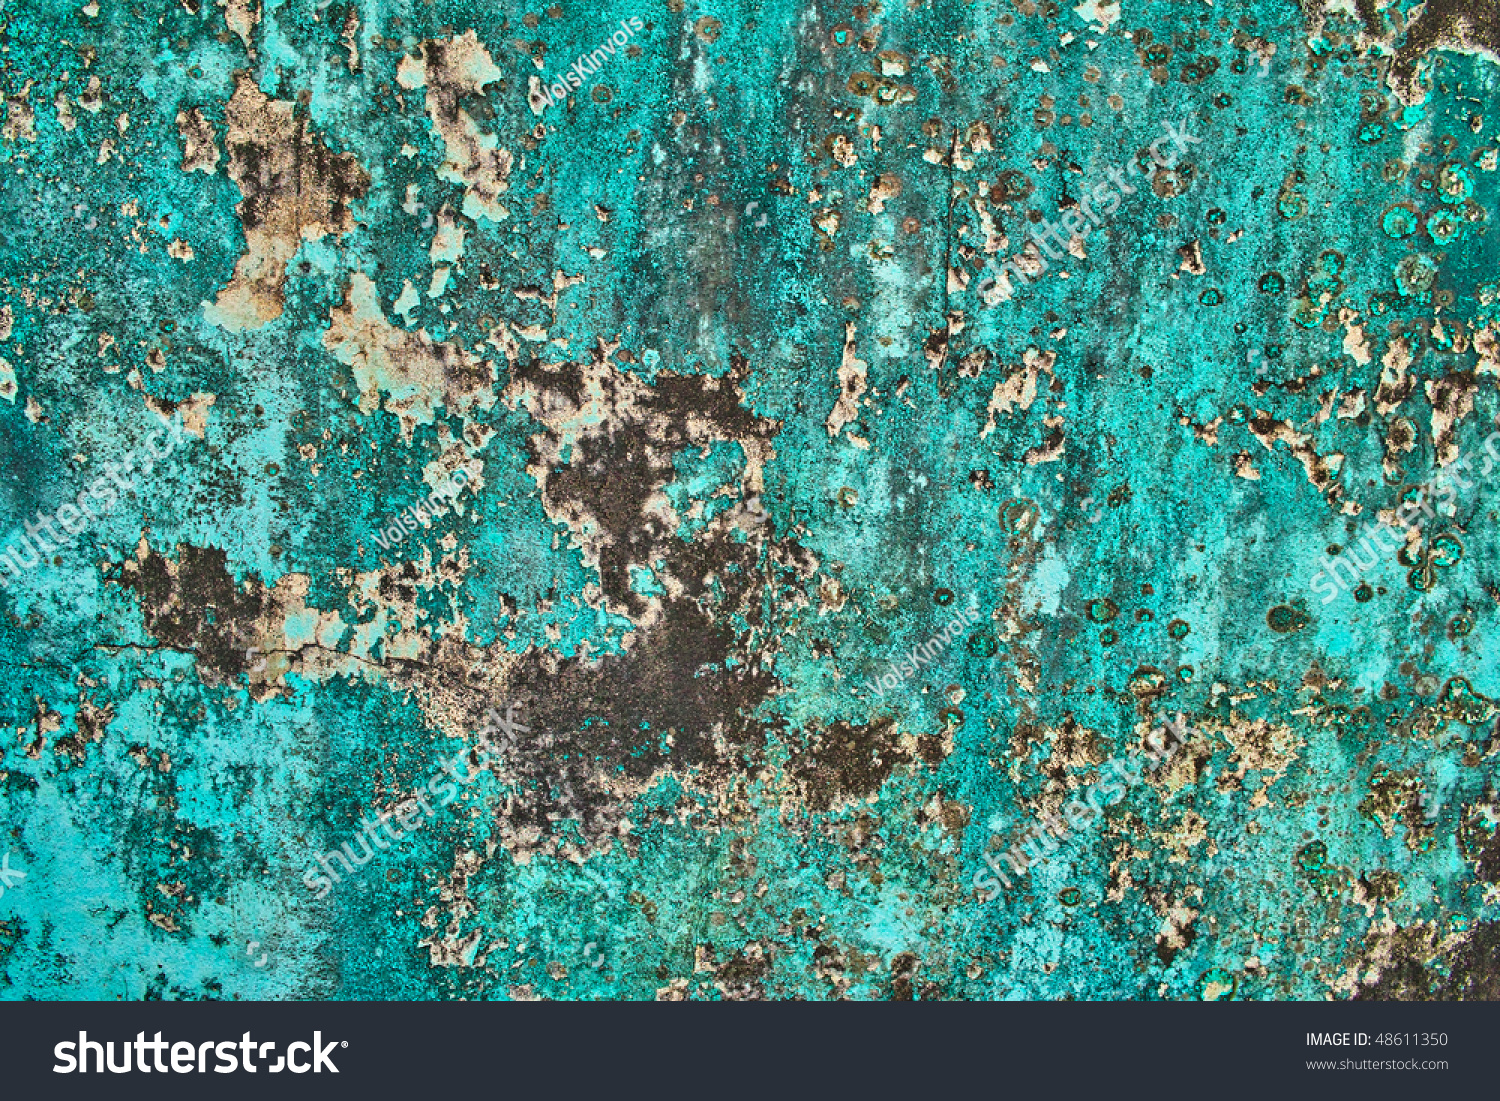 Turquoise wall grunge abstract background texture stock photo 48611350 shutterstock - Turquoise wallpaper for walls ...